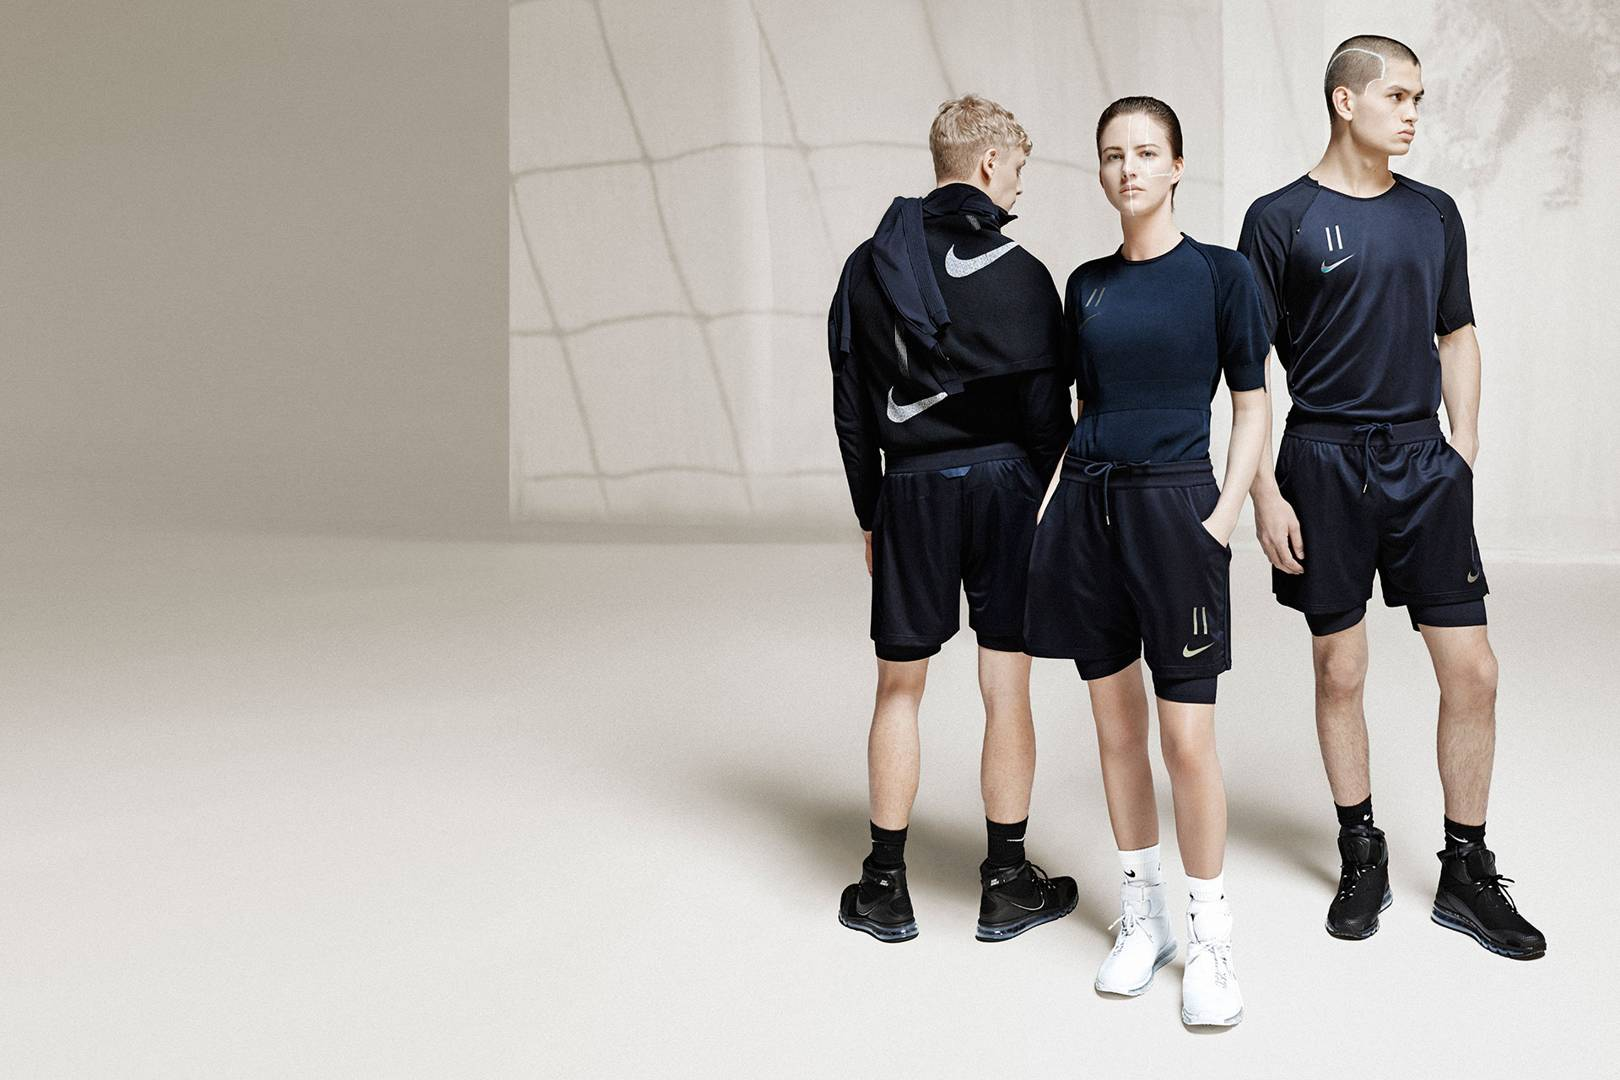 cd5a2b3dfe00 Designer Kim Jones On His Football-Inspired NikeLab Collaboration ...